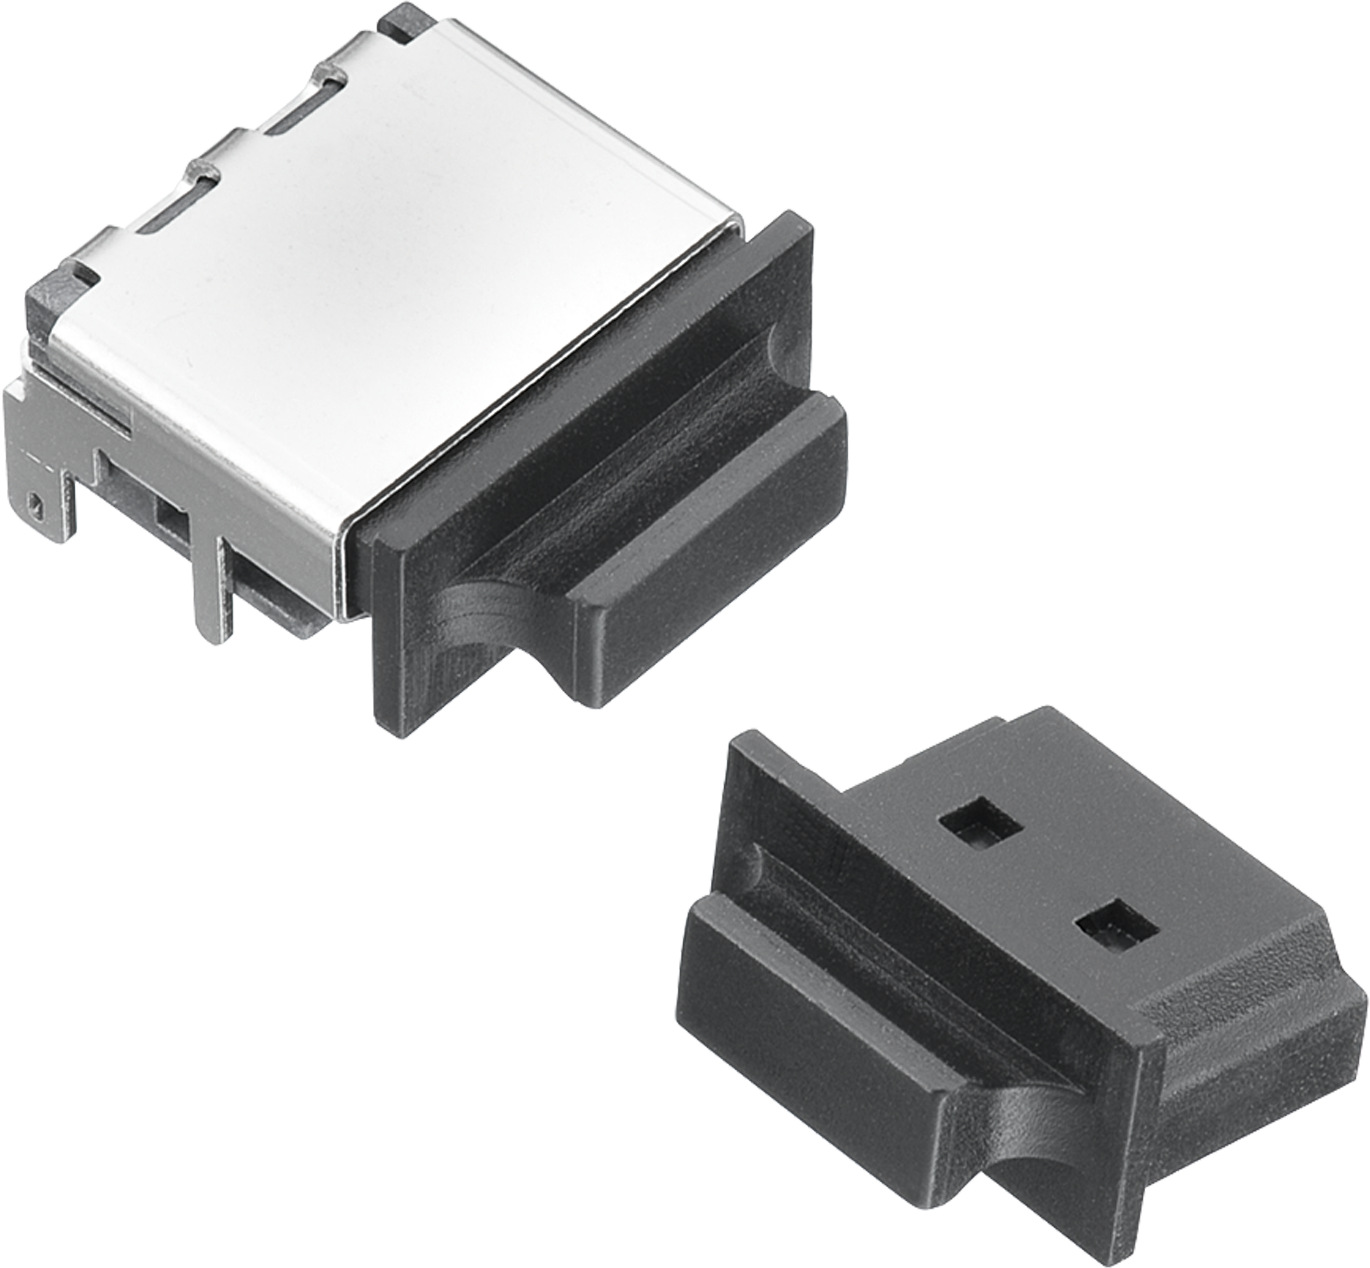 WA-PCCA Plastic Caps for HDMI Connectors Produktbild